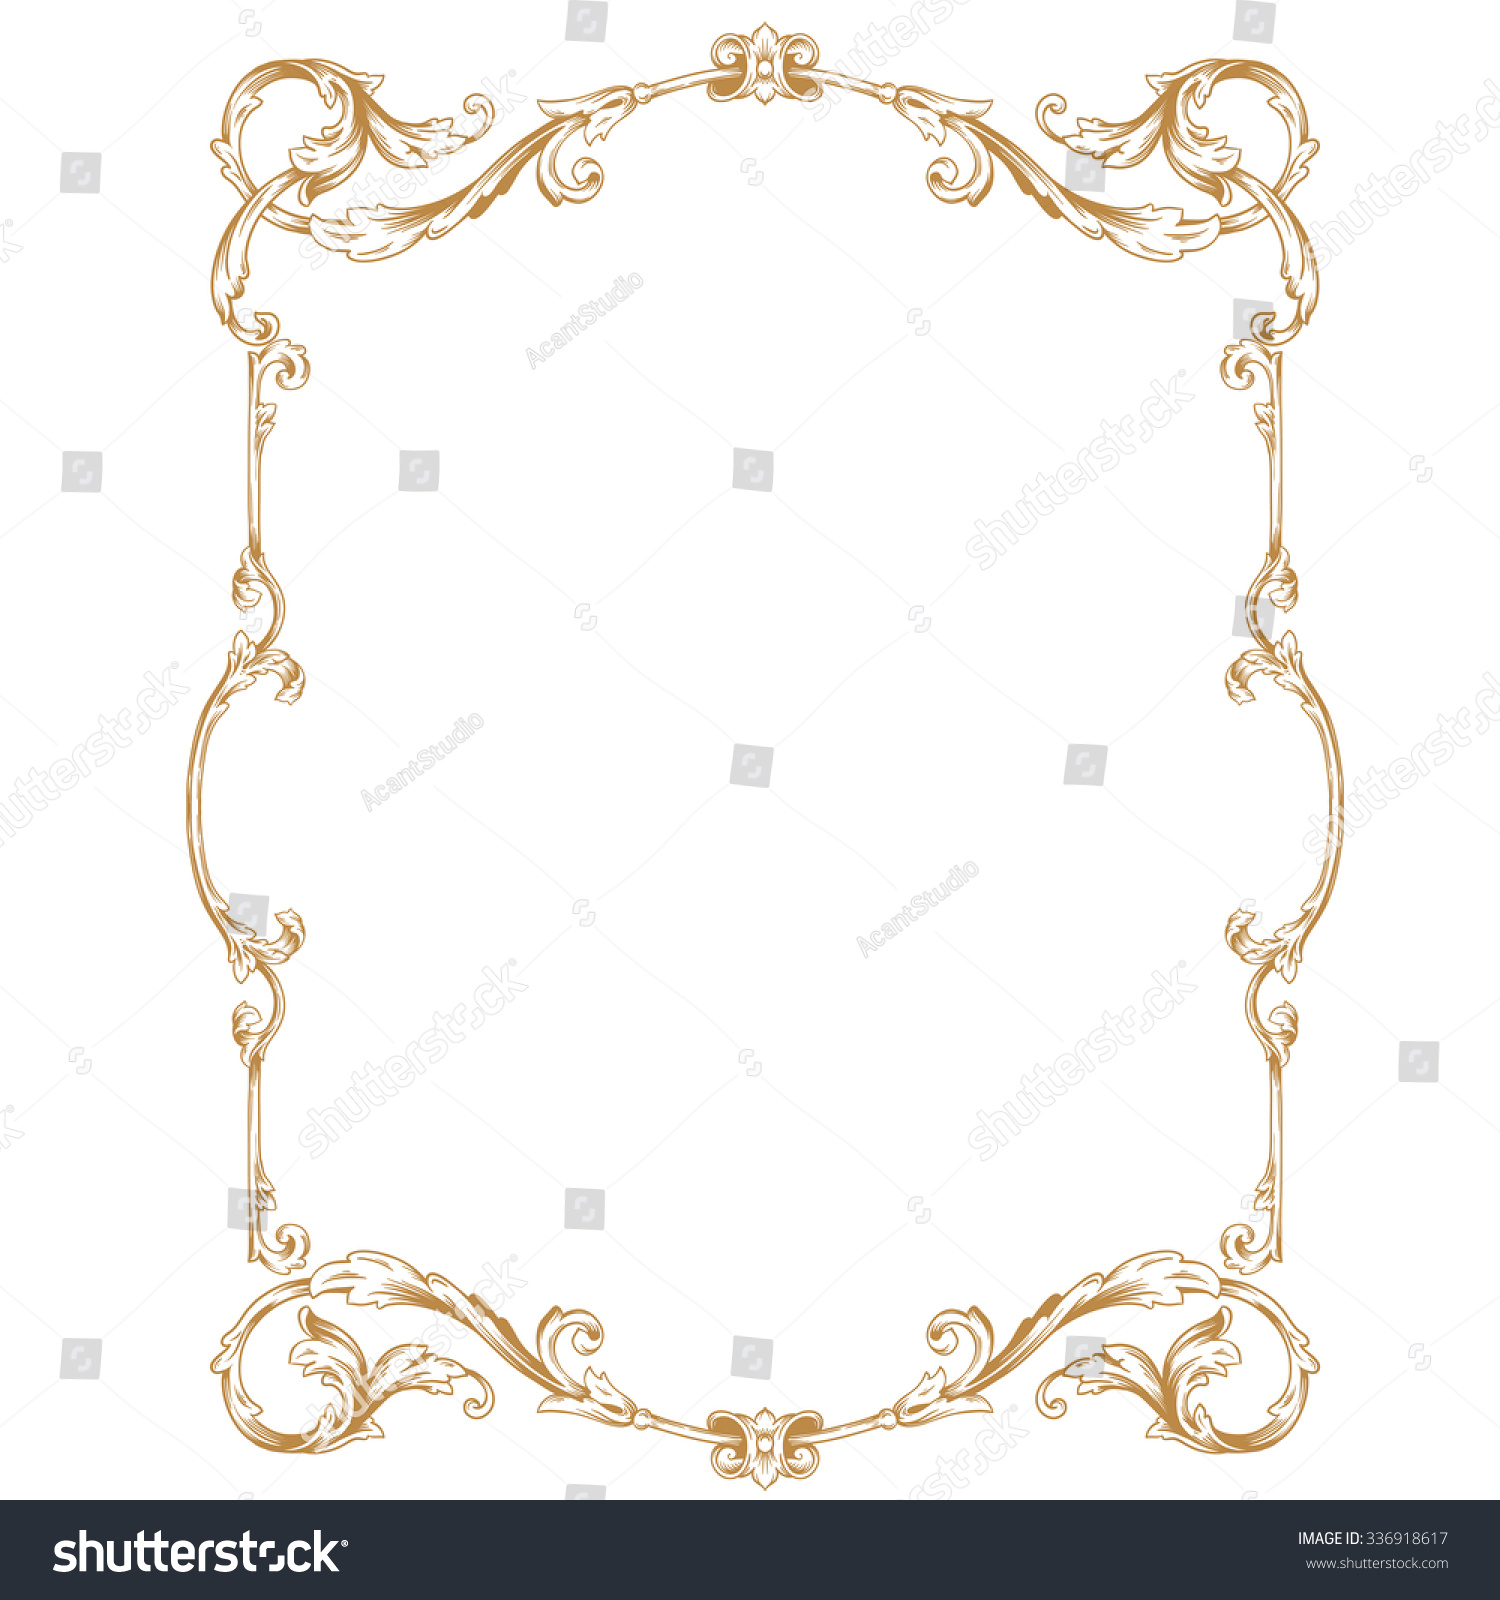 Antique Scroll Patterns: Premium Gold Vintage Baroque Frame Scroll Stock Vector